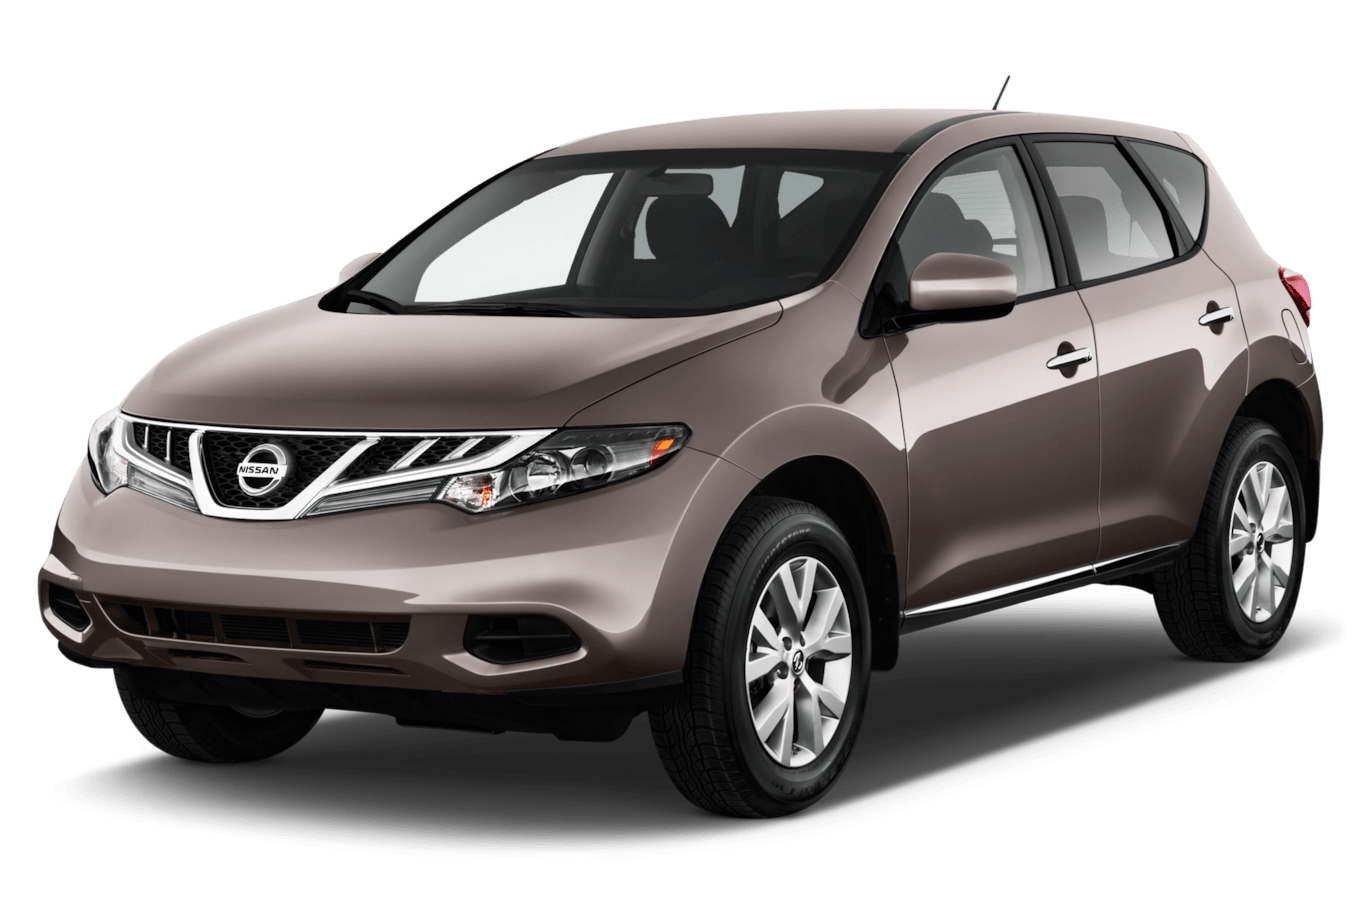 2013 nissan murano s fwd suv angular front?resize\\\\\=665%2C442 2012 sentra wiring diagram 2012 f 150 wiring diagram, 2012 prius 2013 sentra wiring diagram at virtualis.co